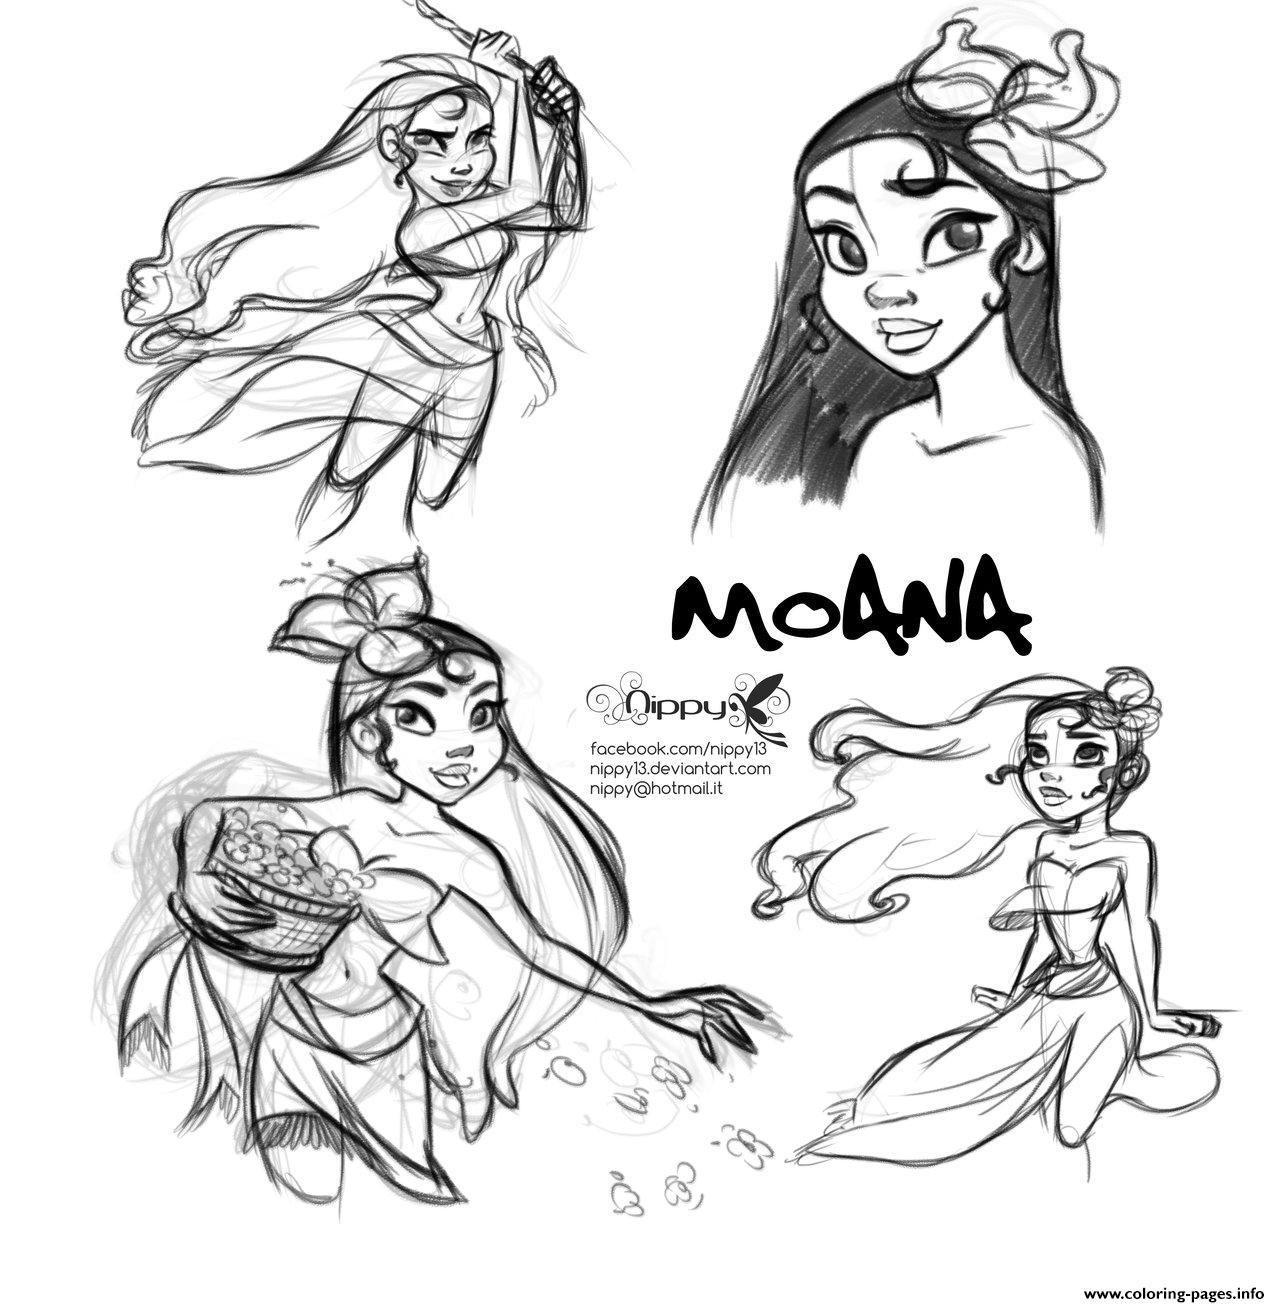 Moana Disney Princess Fan Art coloring pages